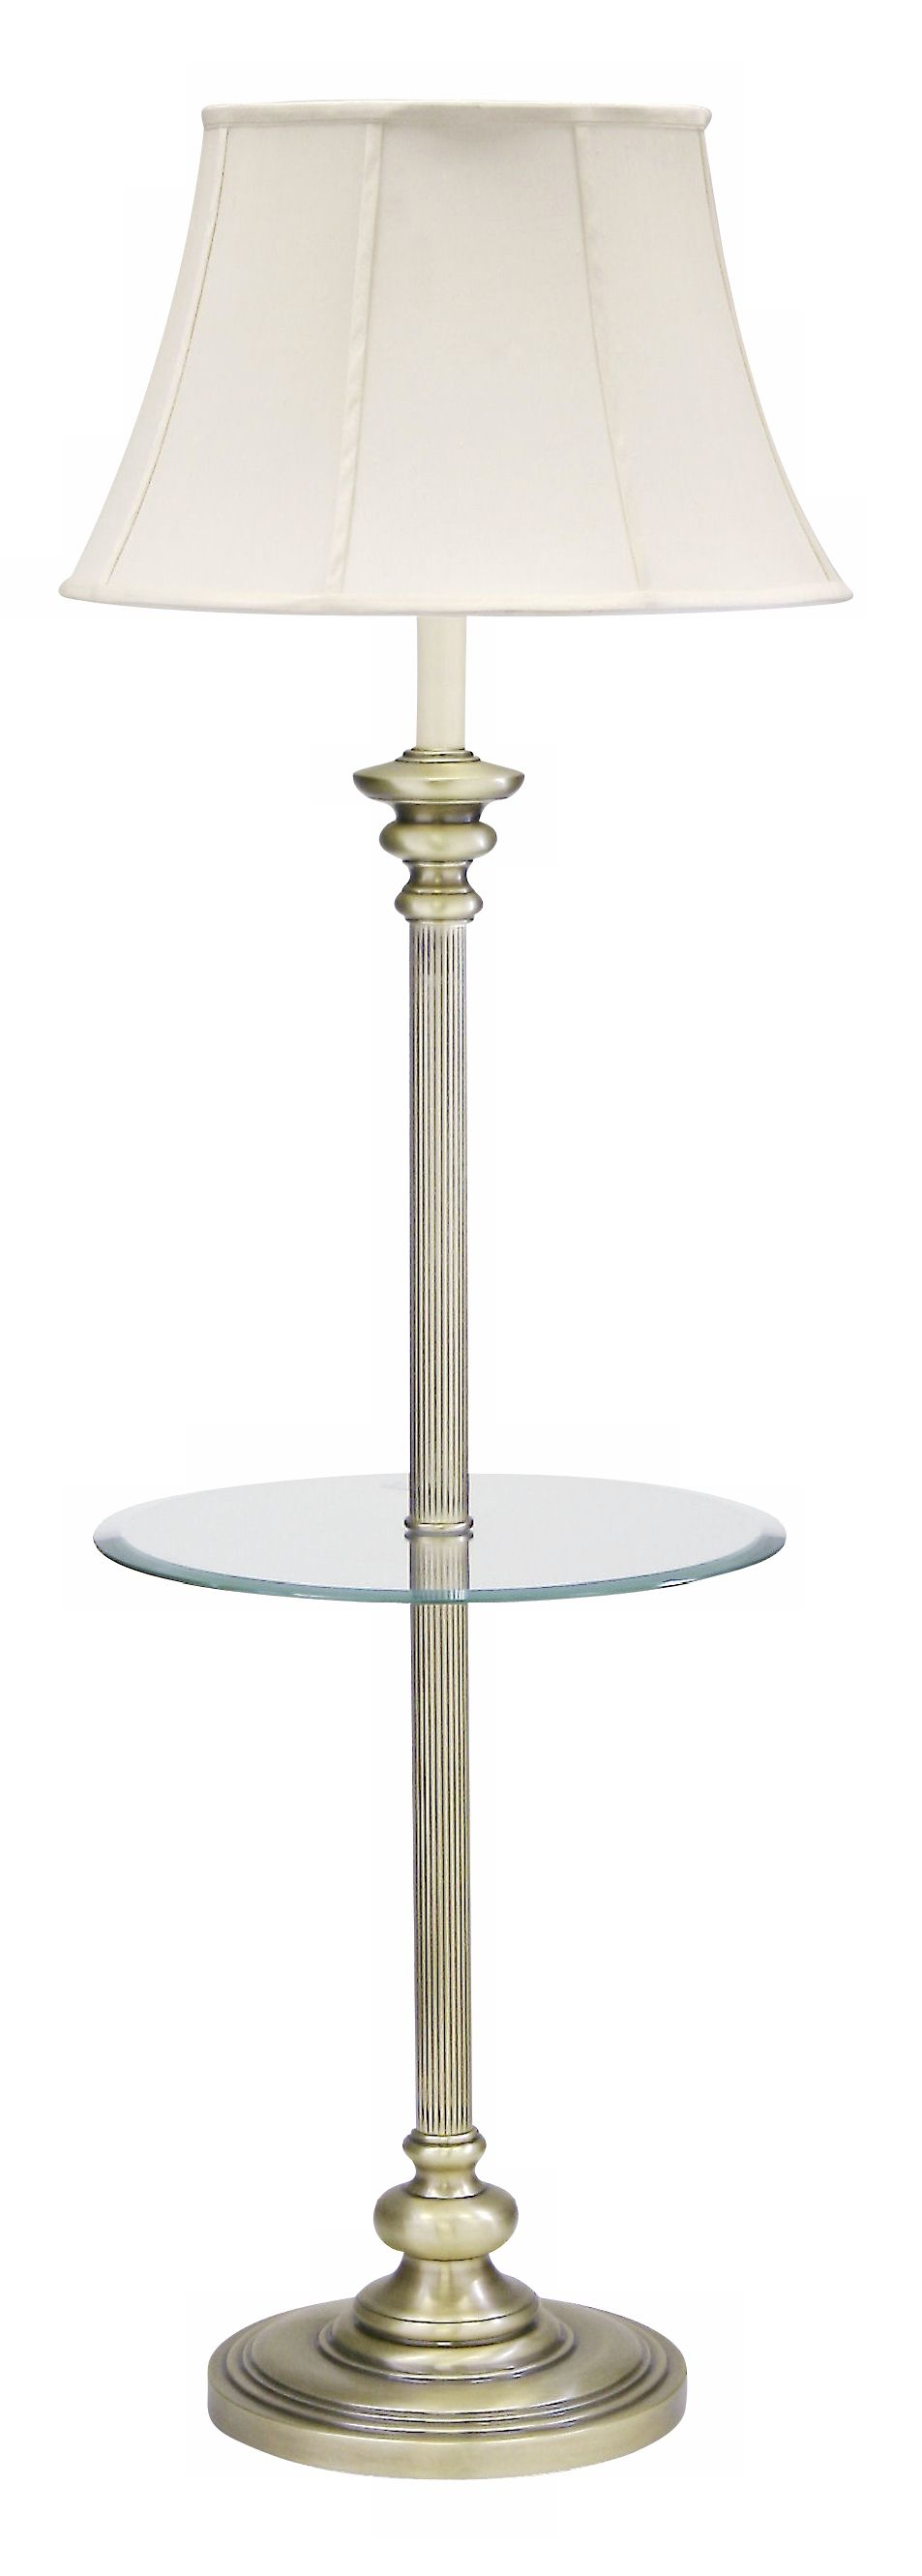 High Quality House Of Troy Newport Glass Tray Floor Lamp Antique Brass